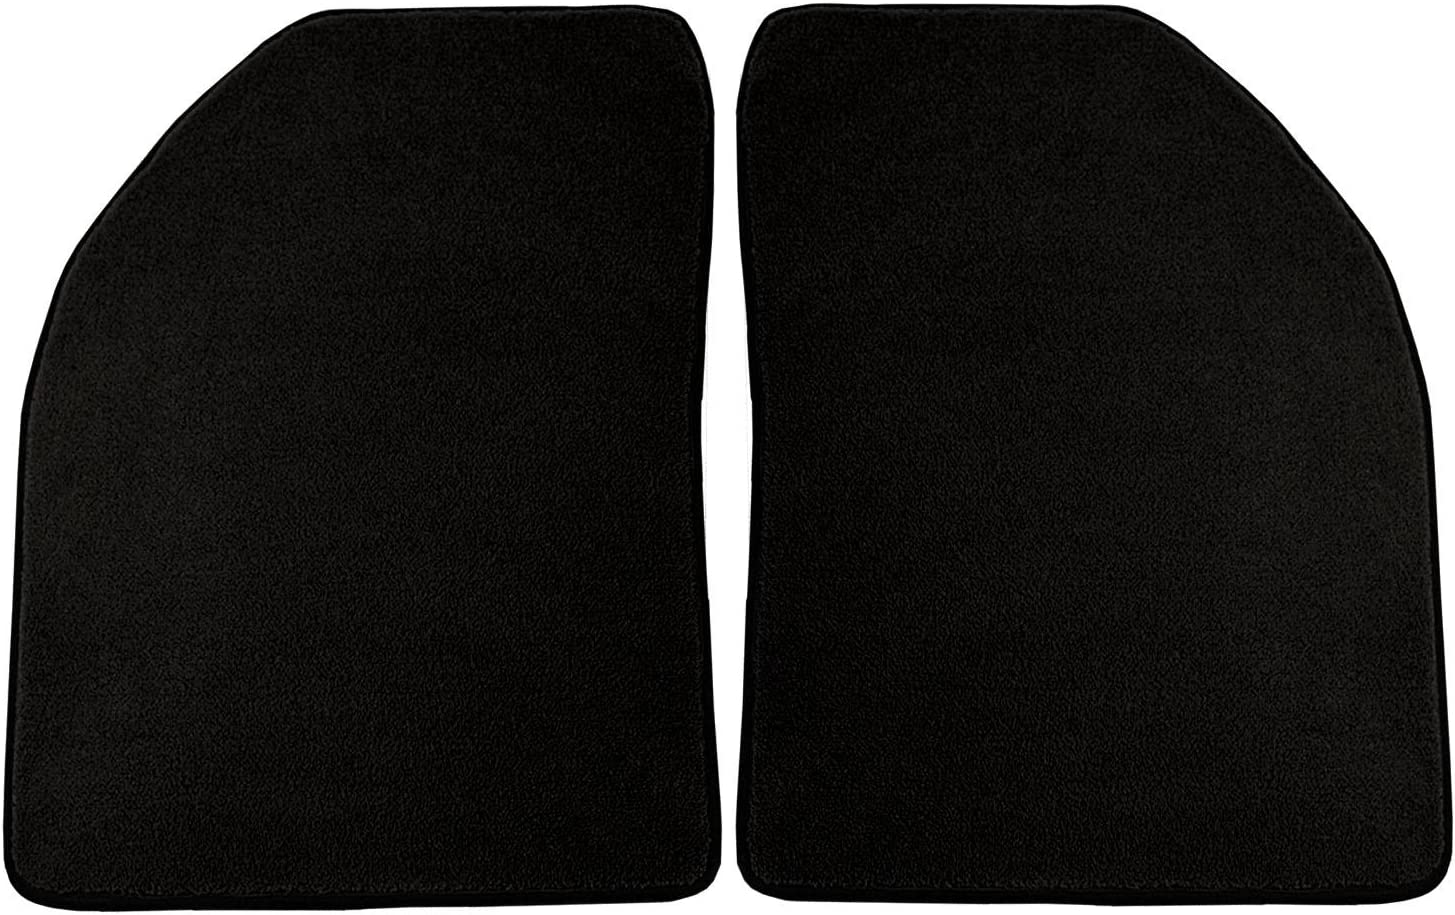 Coverking Custom Fit Rear Floor Mats for Select Dodge Models Black Nylon Carpet